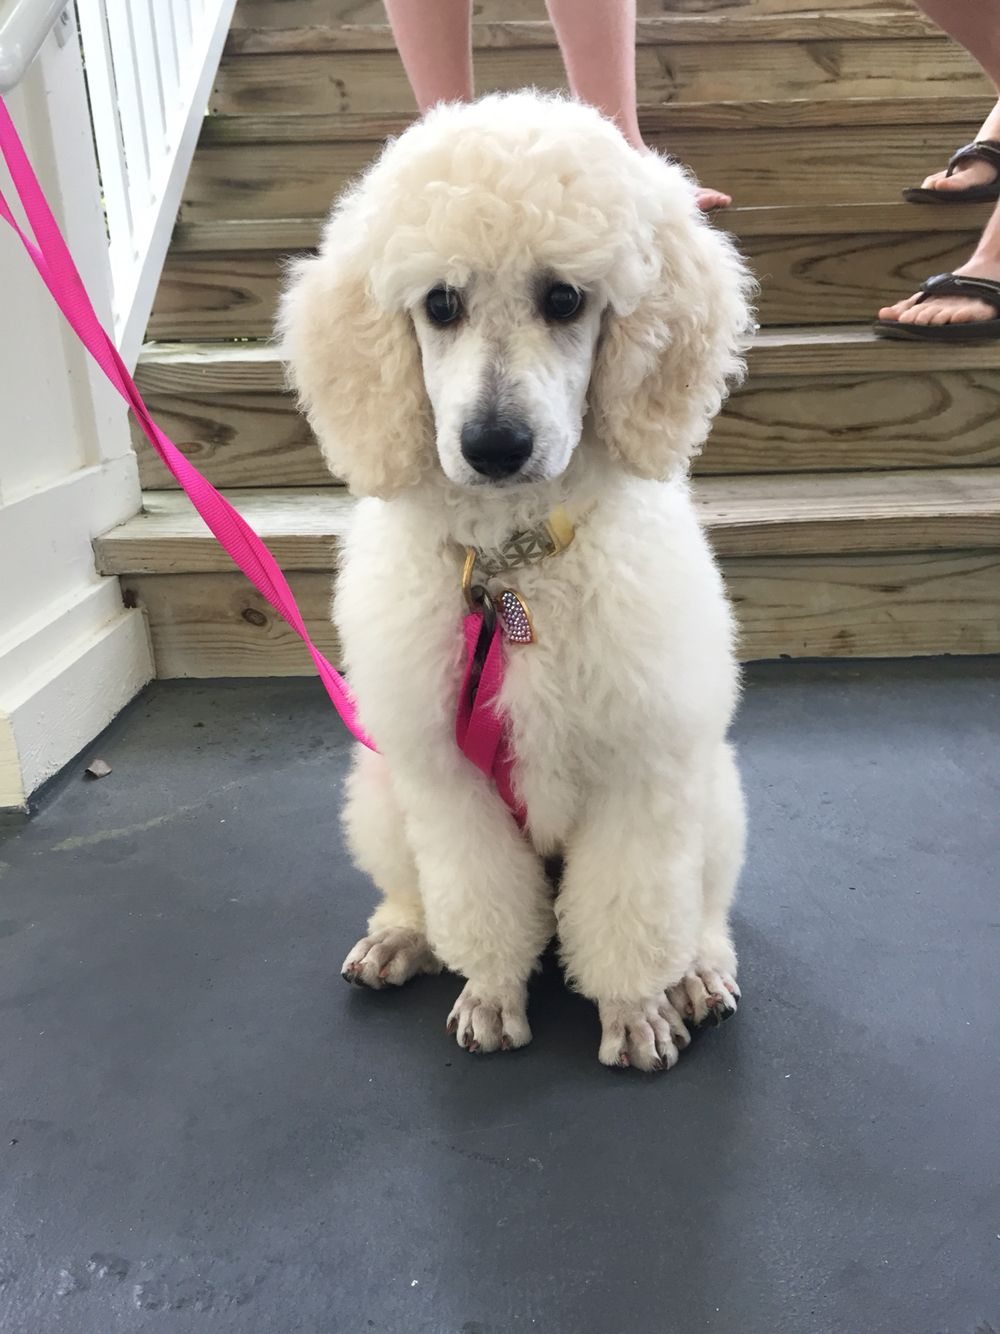 Ivy Pearl My 11 Week Old Standard Poodle I Got Her From Family